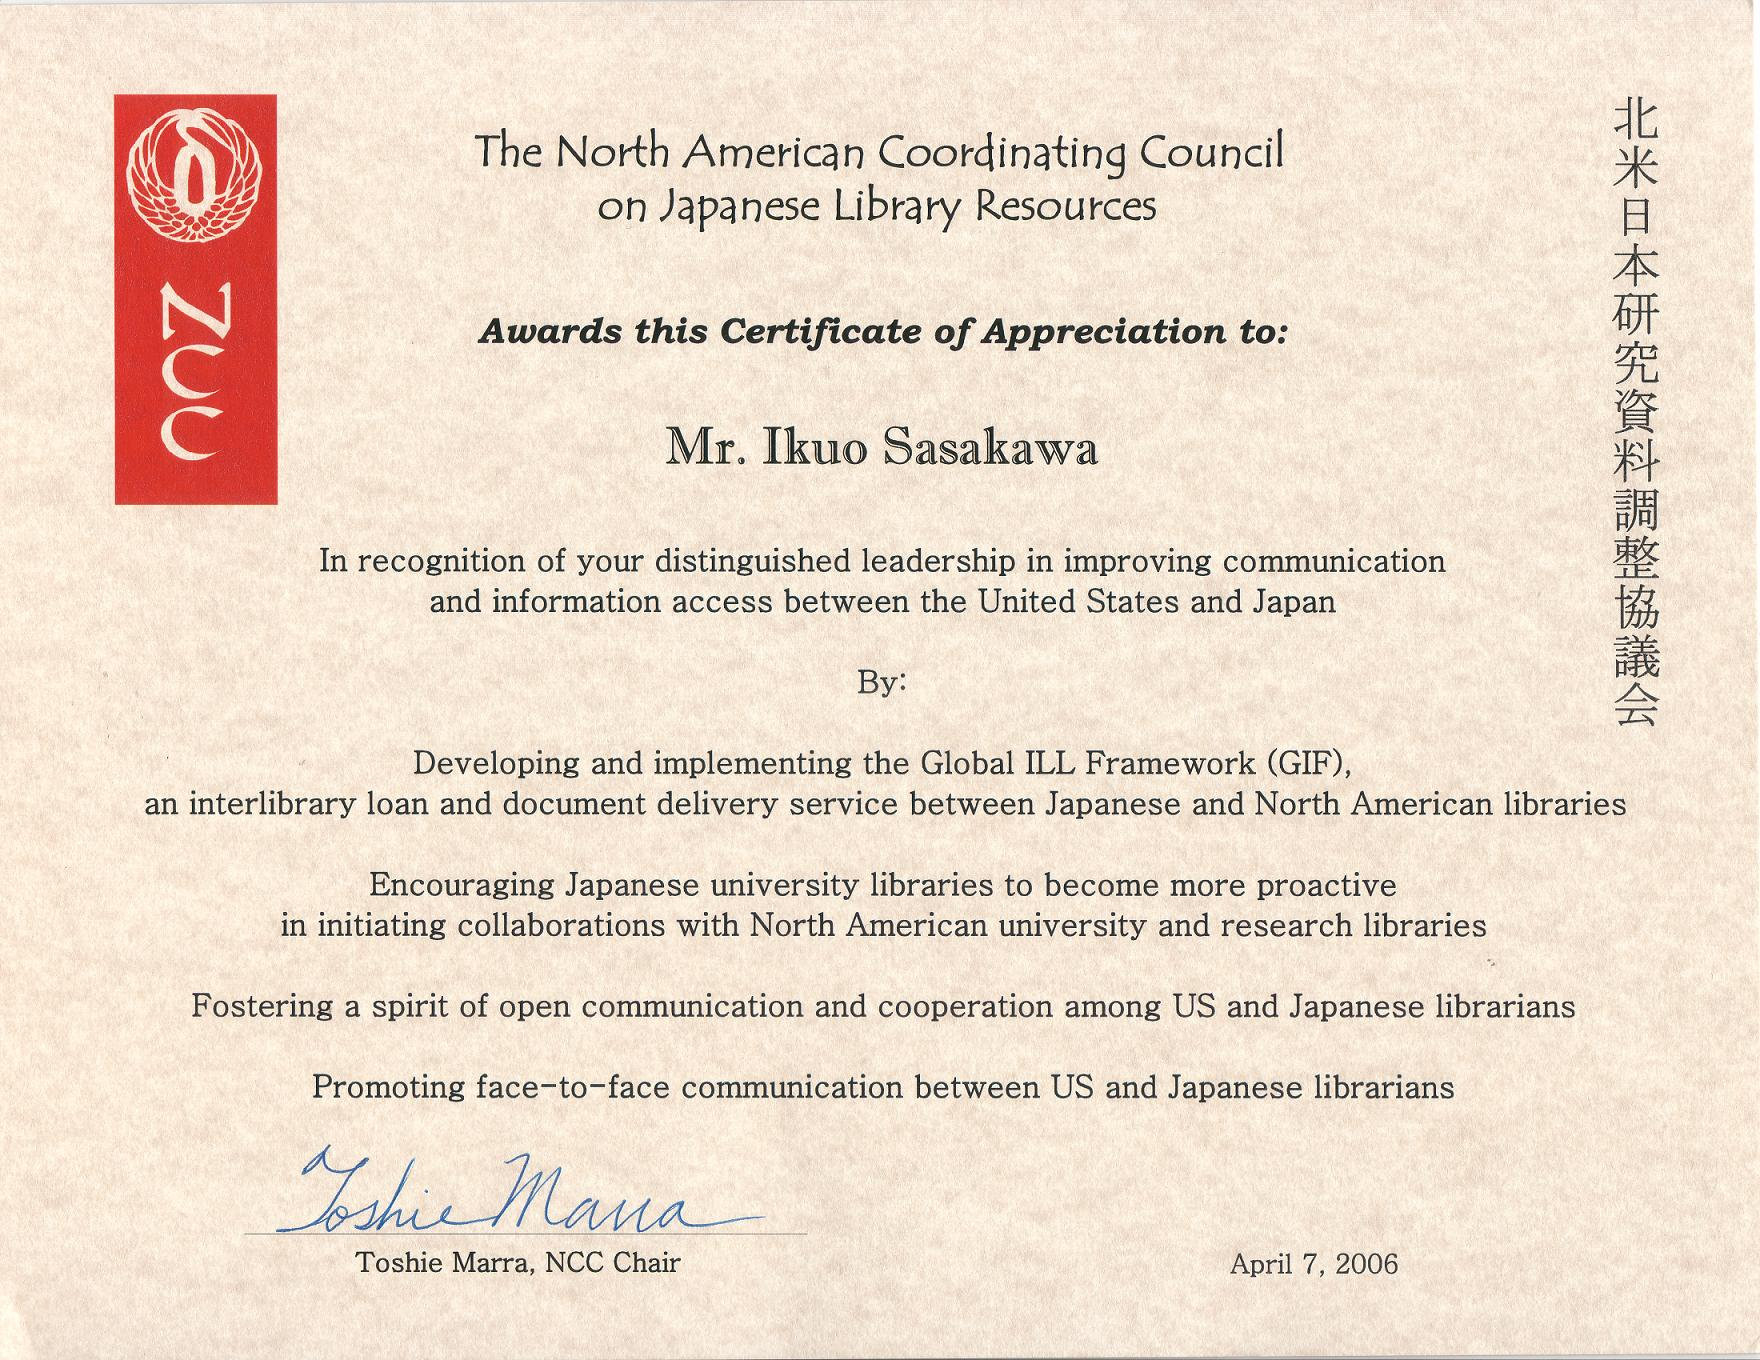 Mr. Sasakawa received a Certificate of Appreciation from NCC